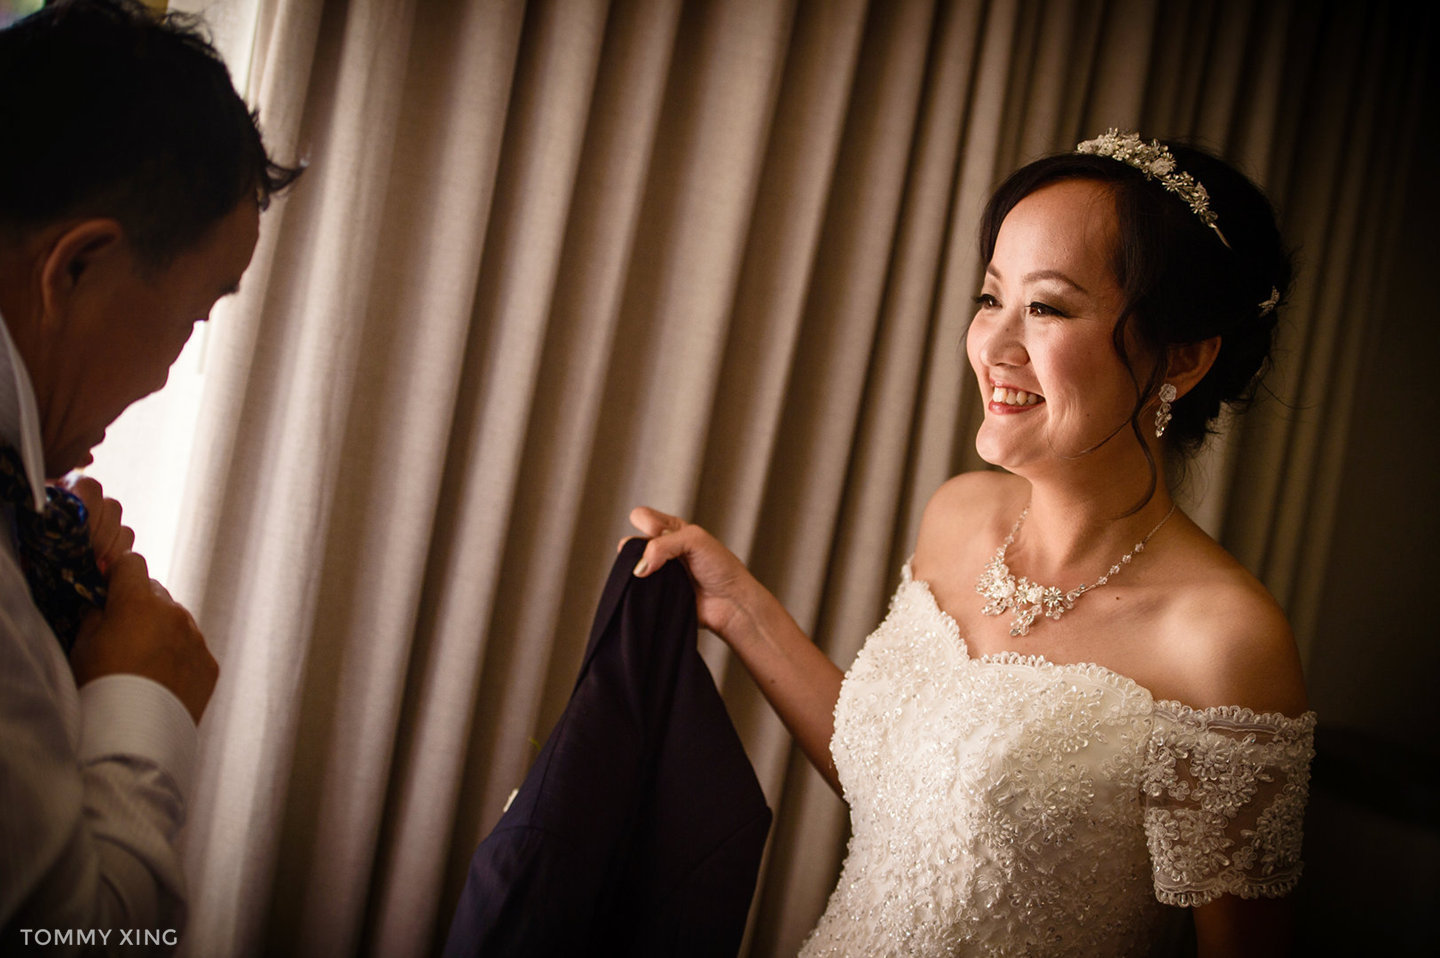 Paradise Point Resort Wedding Xiaolu & Bin San Diego 圣地亚哥婚礼摄影跟拍 Tommy Xing Photography 洛杉矶婚礼婚纱照摄影师 042.jpg